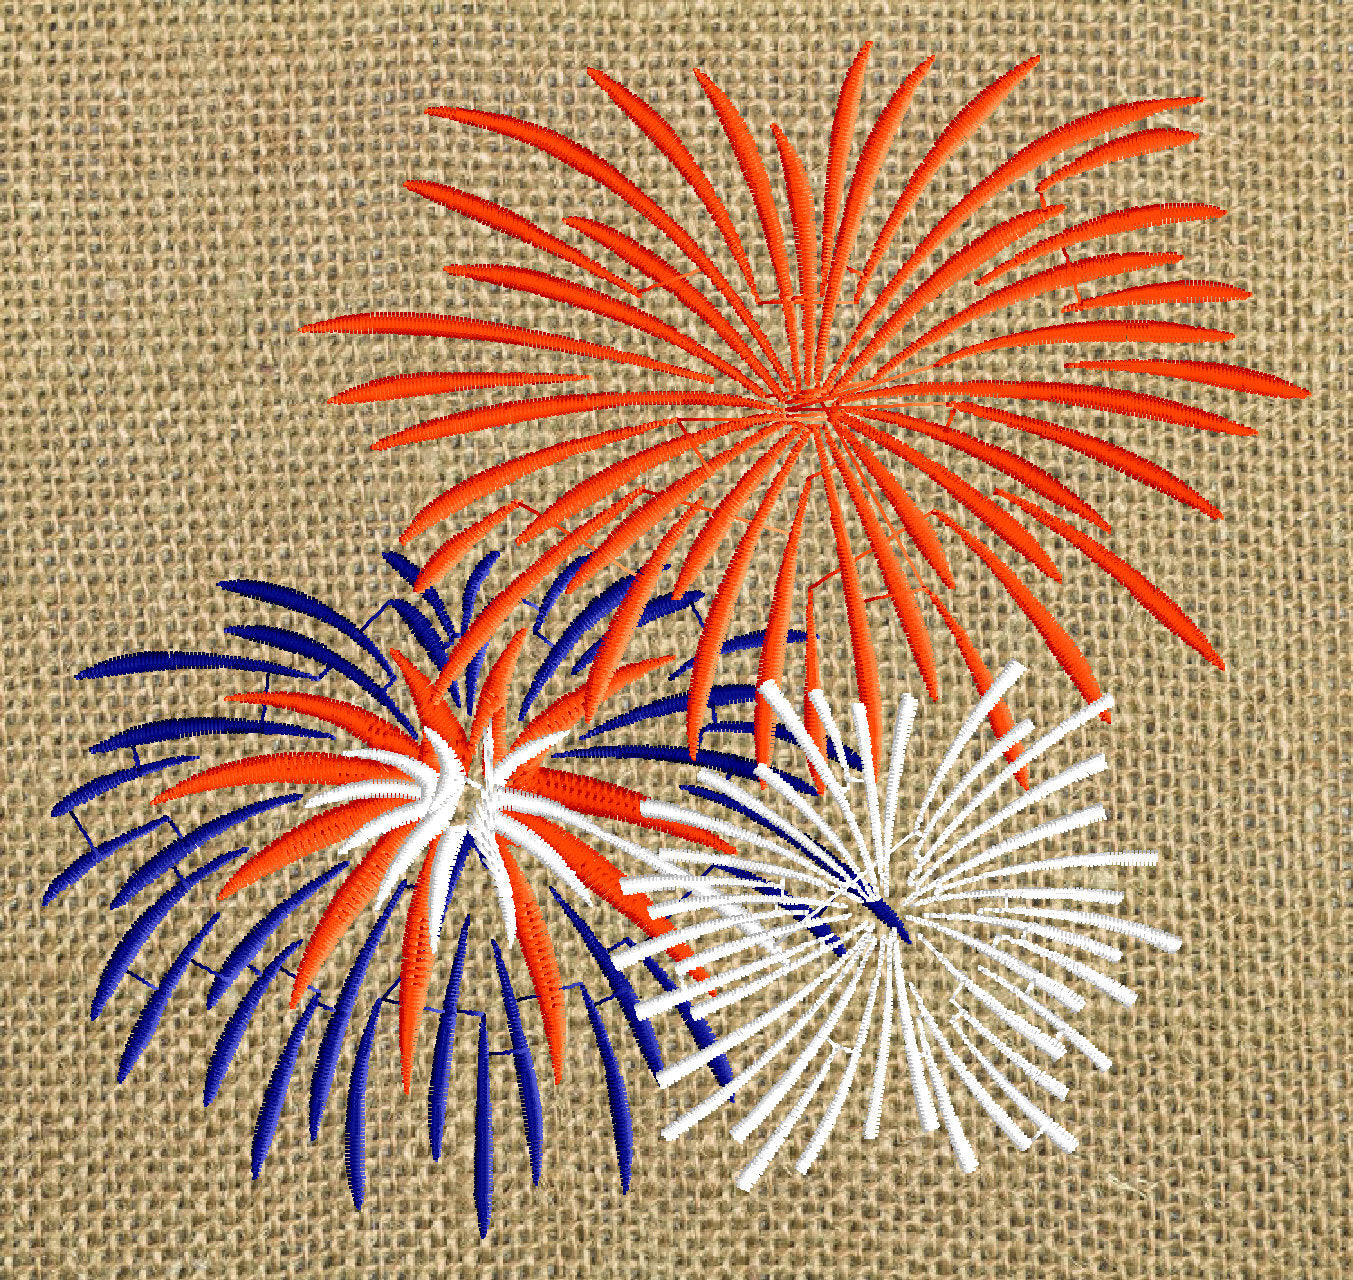 Fireworks Patriotic Design 4th Of July Welcome Home Embroidery D Stitchelf